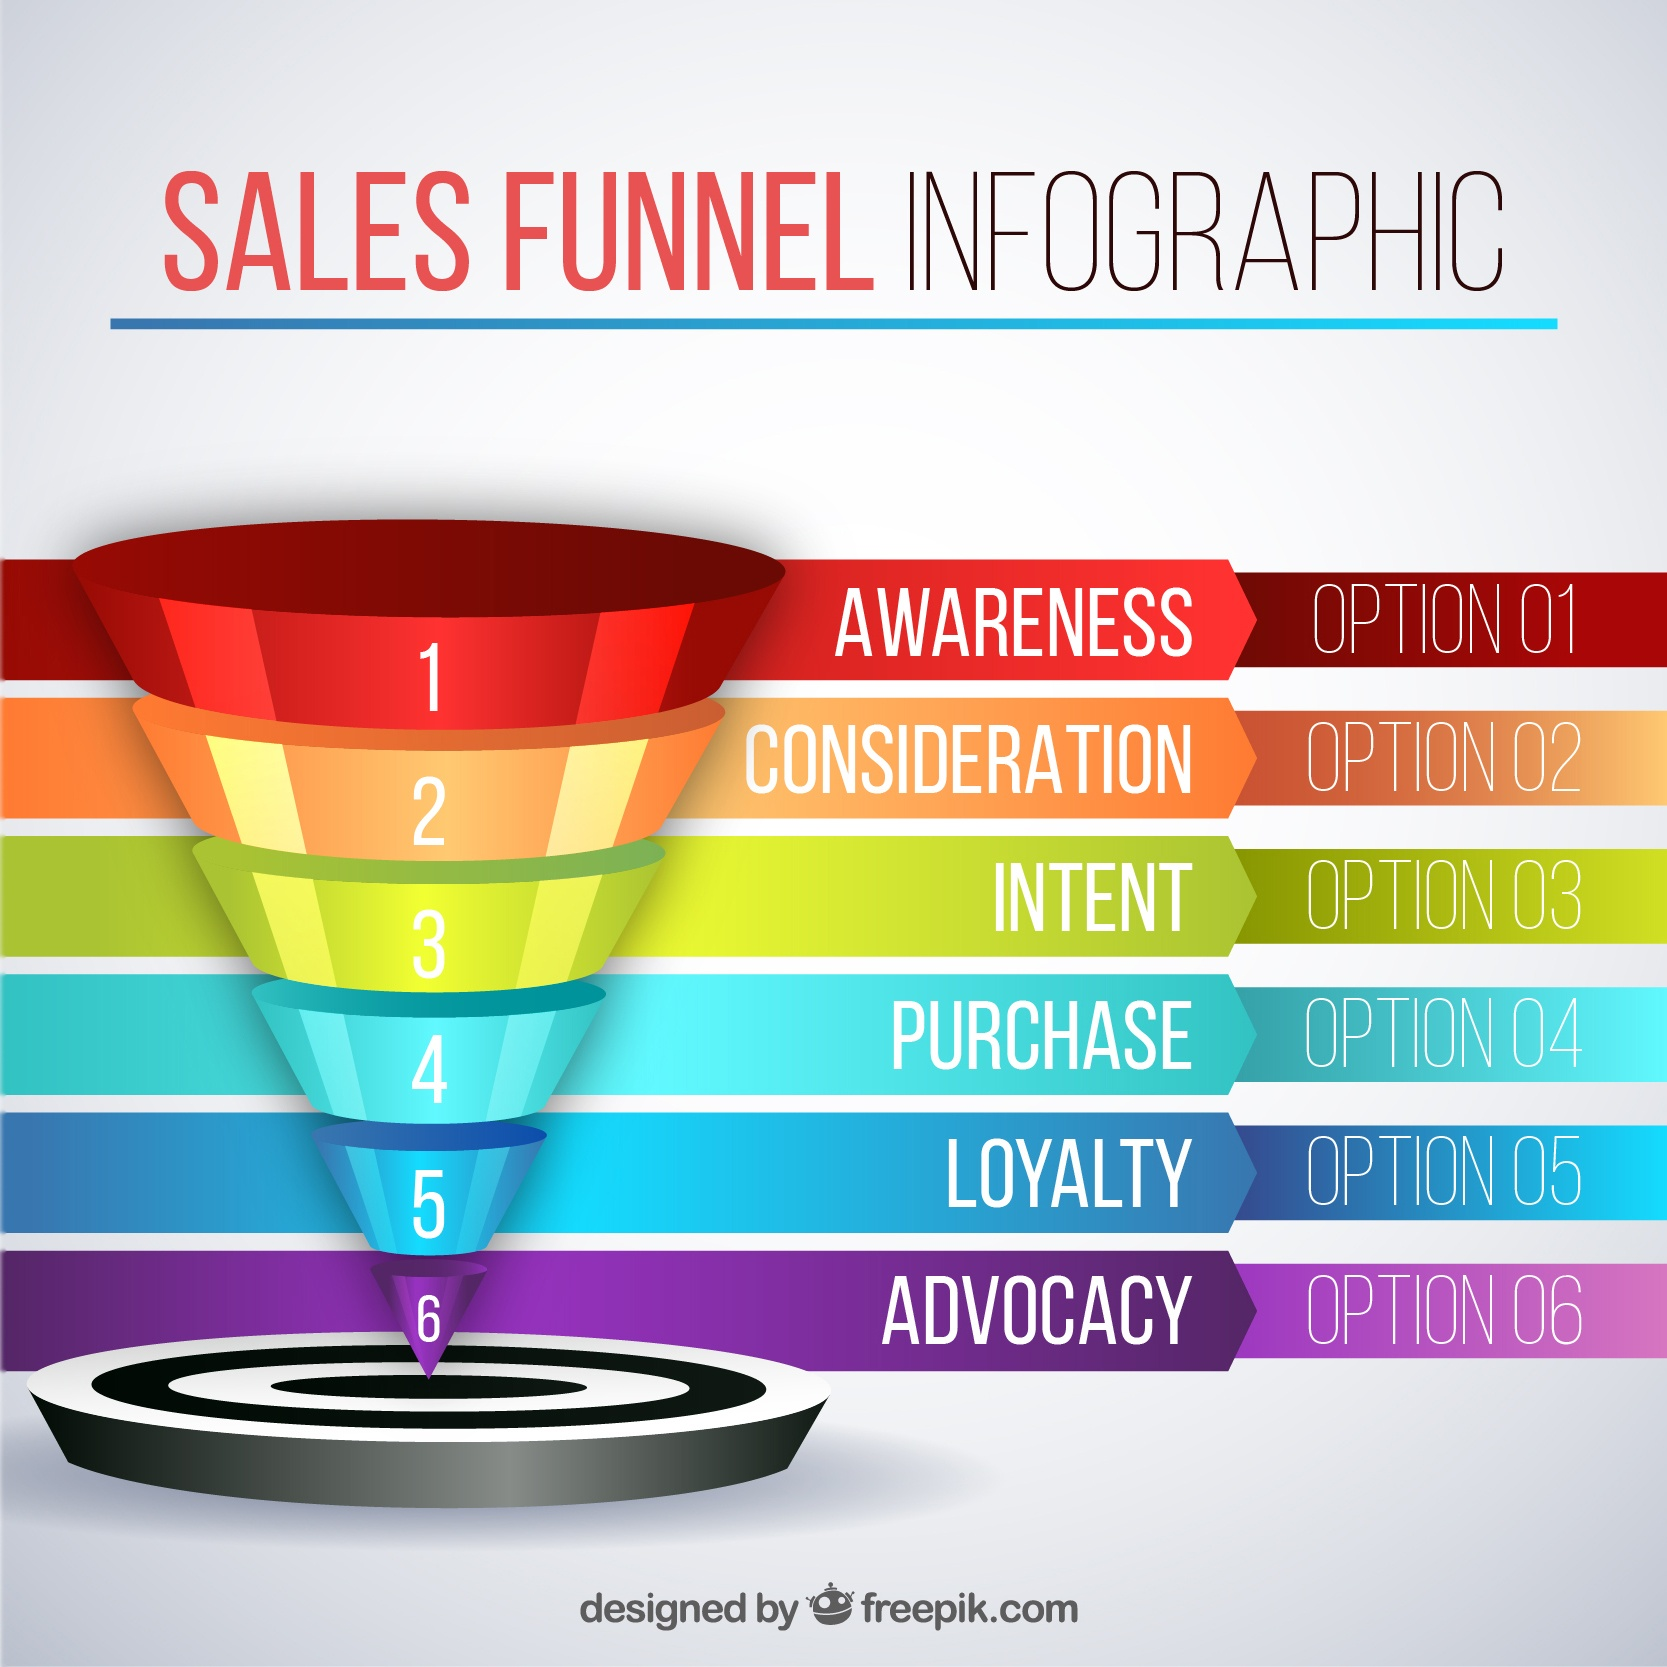 Sales funnel infographic that shoes these steps in order: awareness, consideration, intent, purchase, loyalty, and advocacy.